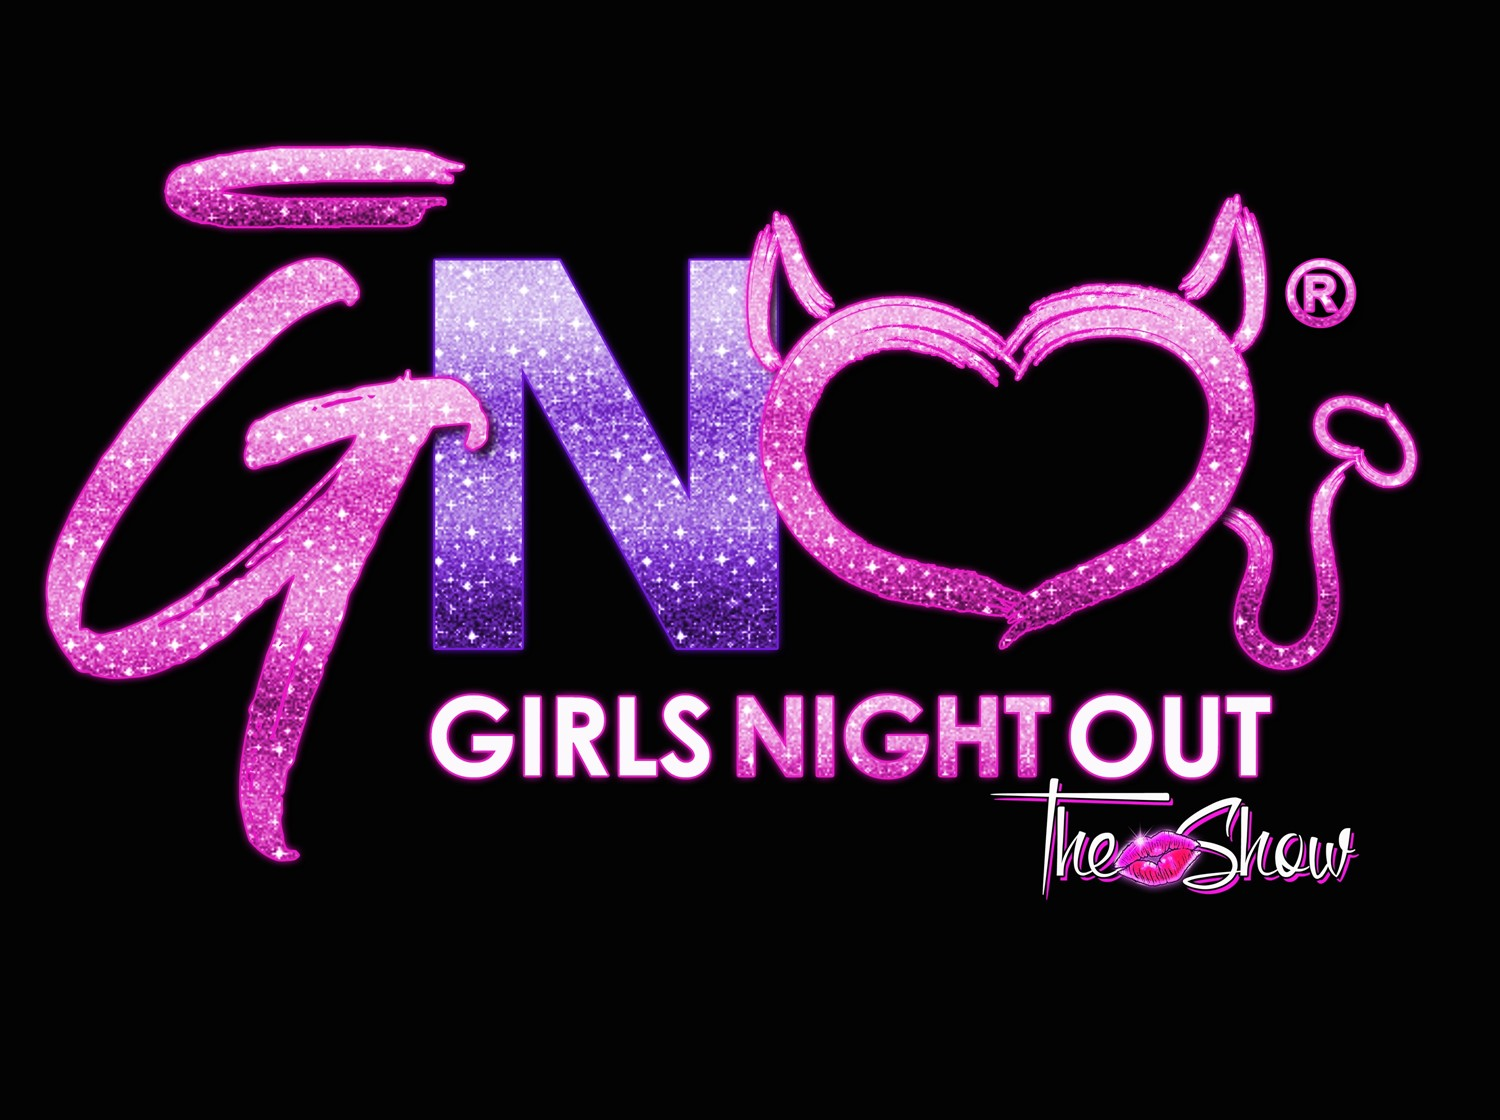 La Stanza Downtown (21+) Corpus Christi, TX on Mar 24, 20:00@La Stanza Downtown - Buy tickets and Get information on Girls Night Out the Show tickets.girlsnightouttheshow.com